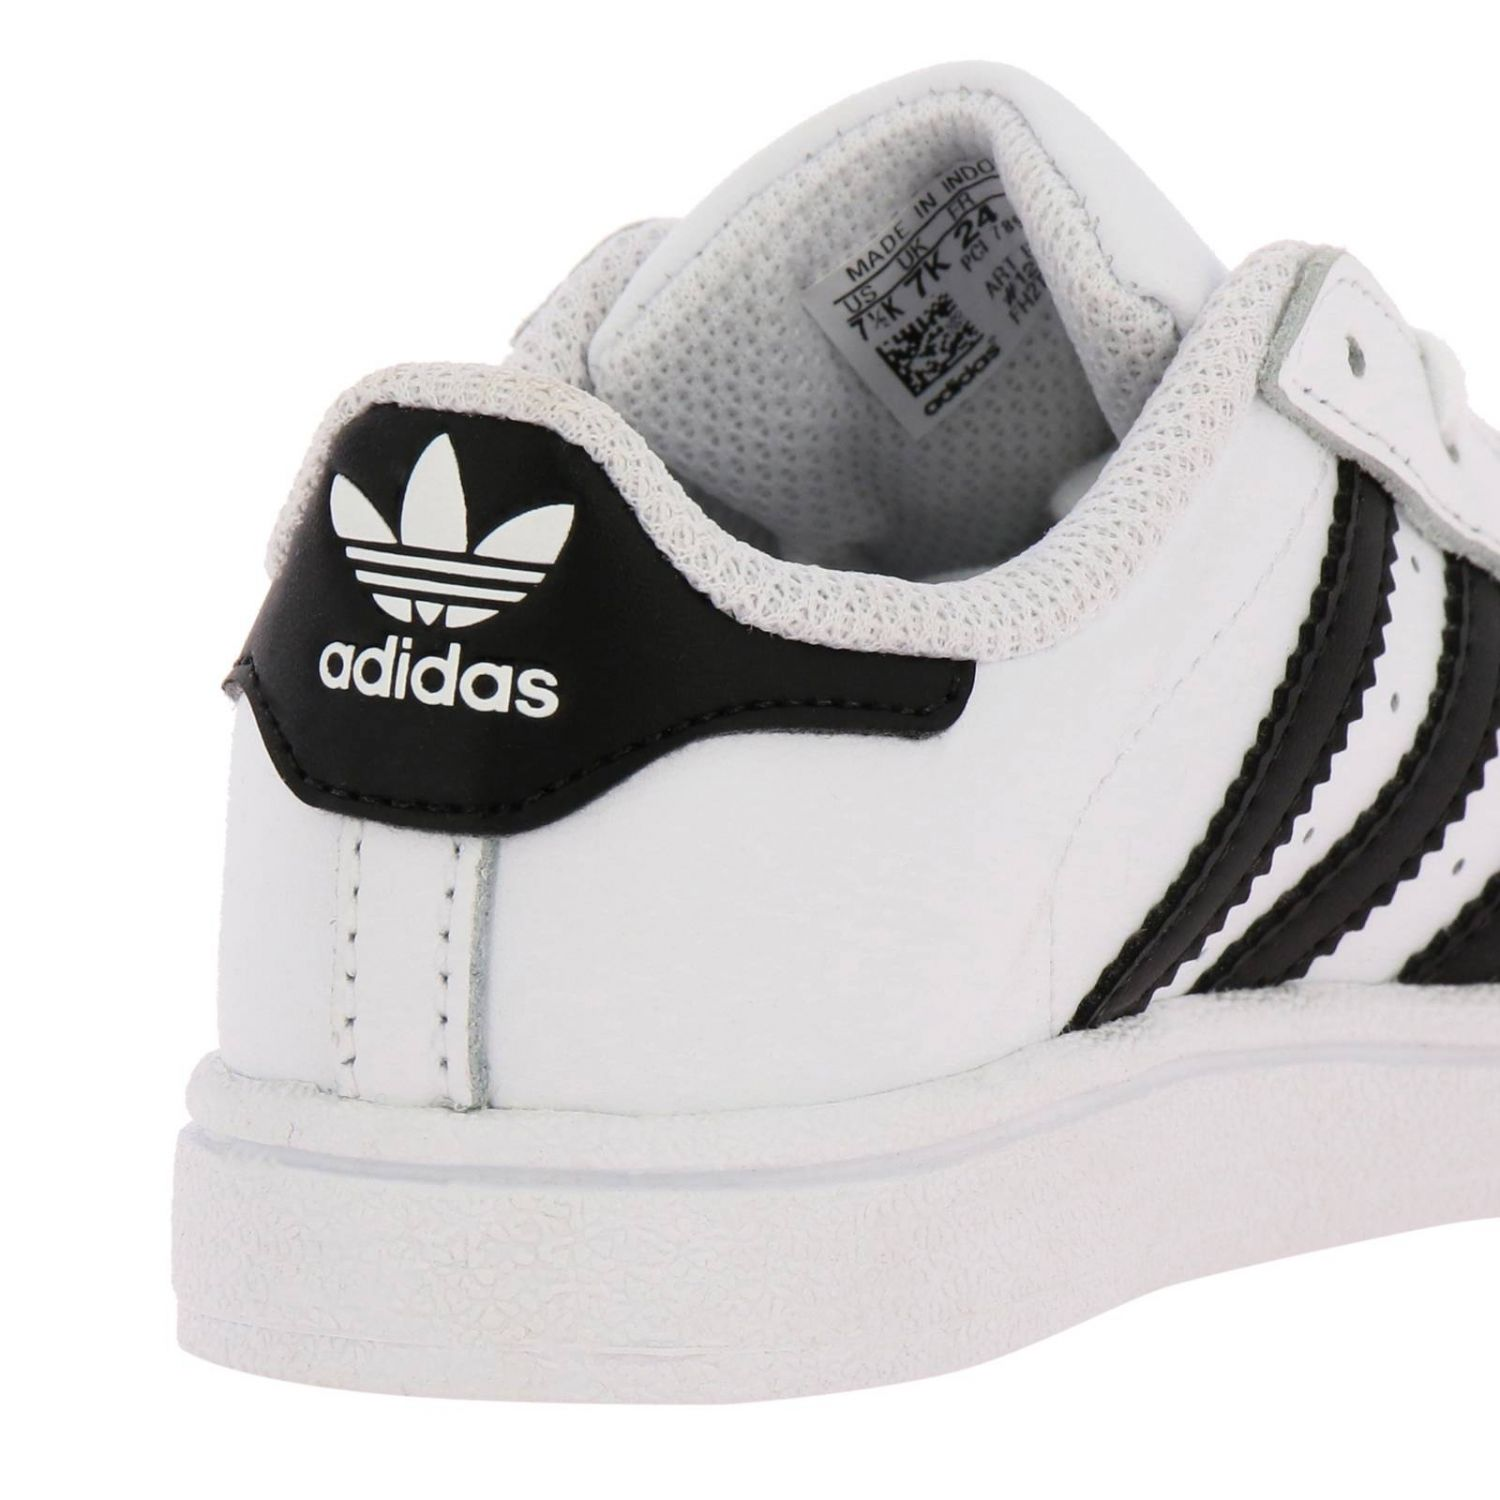 Adidas Originals Superstar Sneakers in leather with 3 contrasting stripes white 4